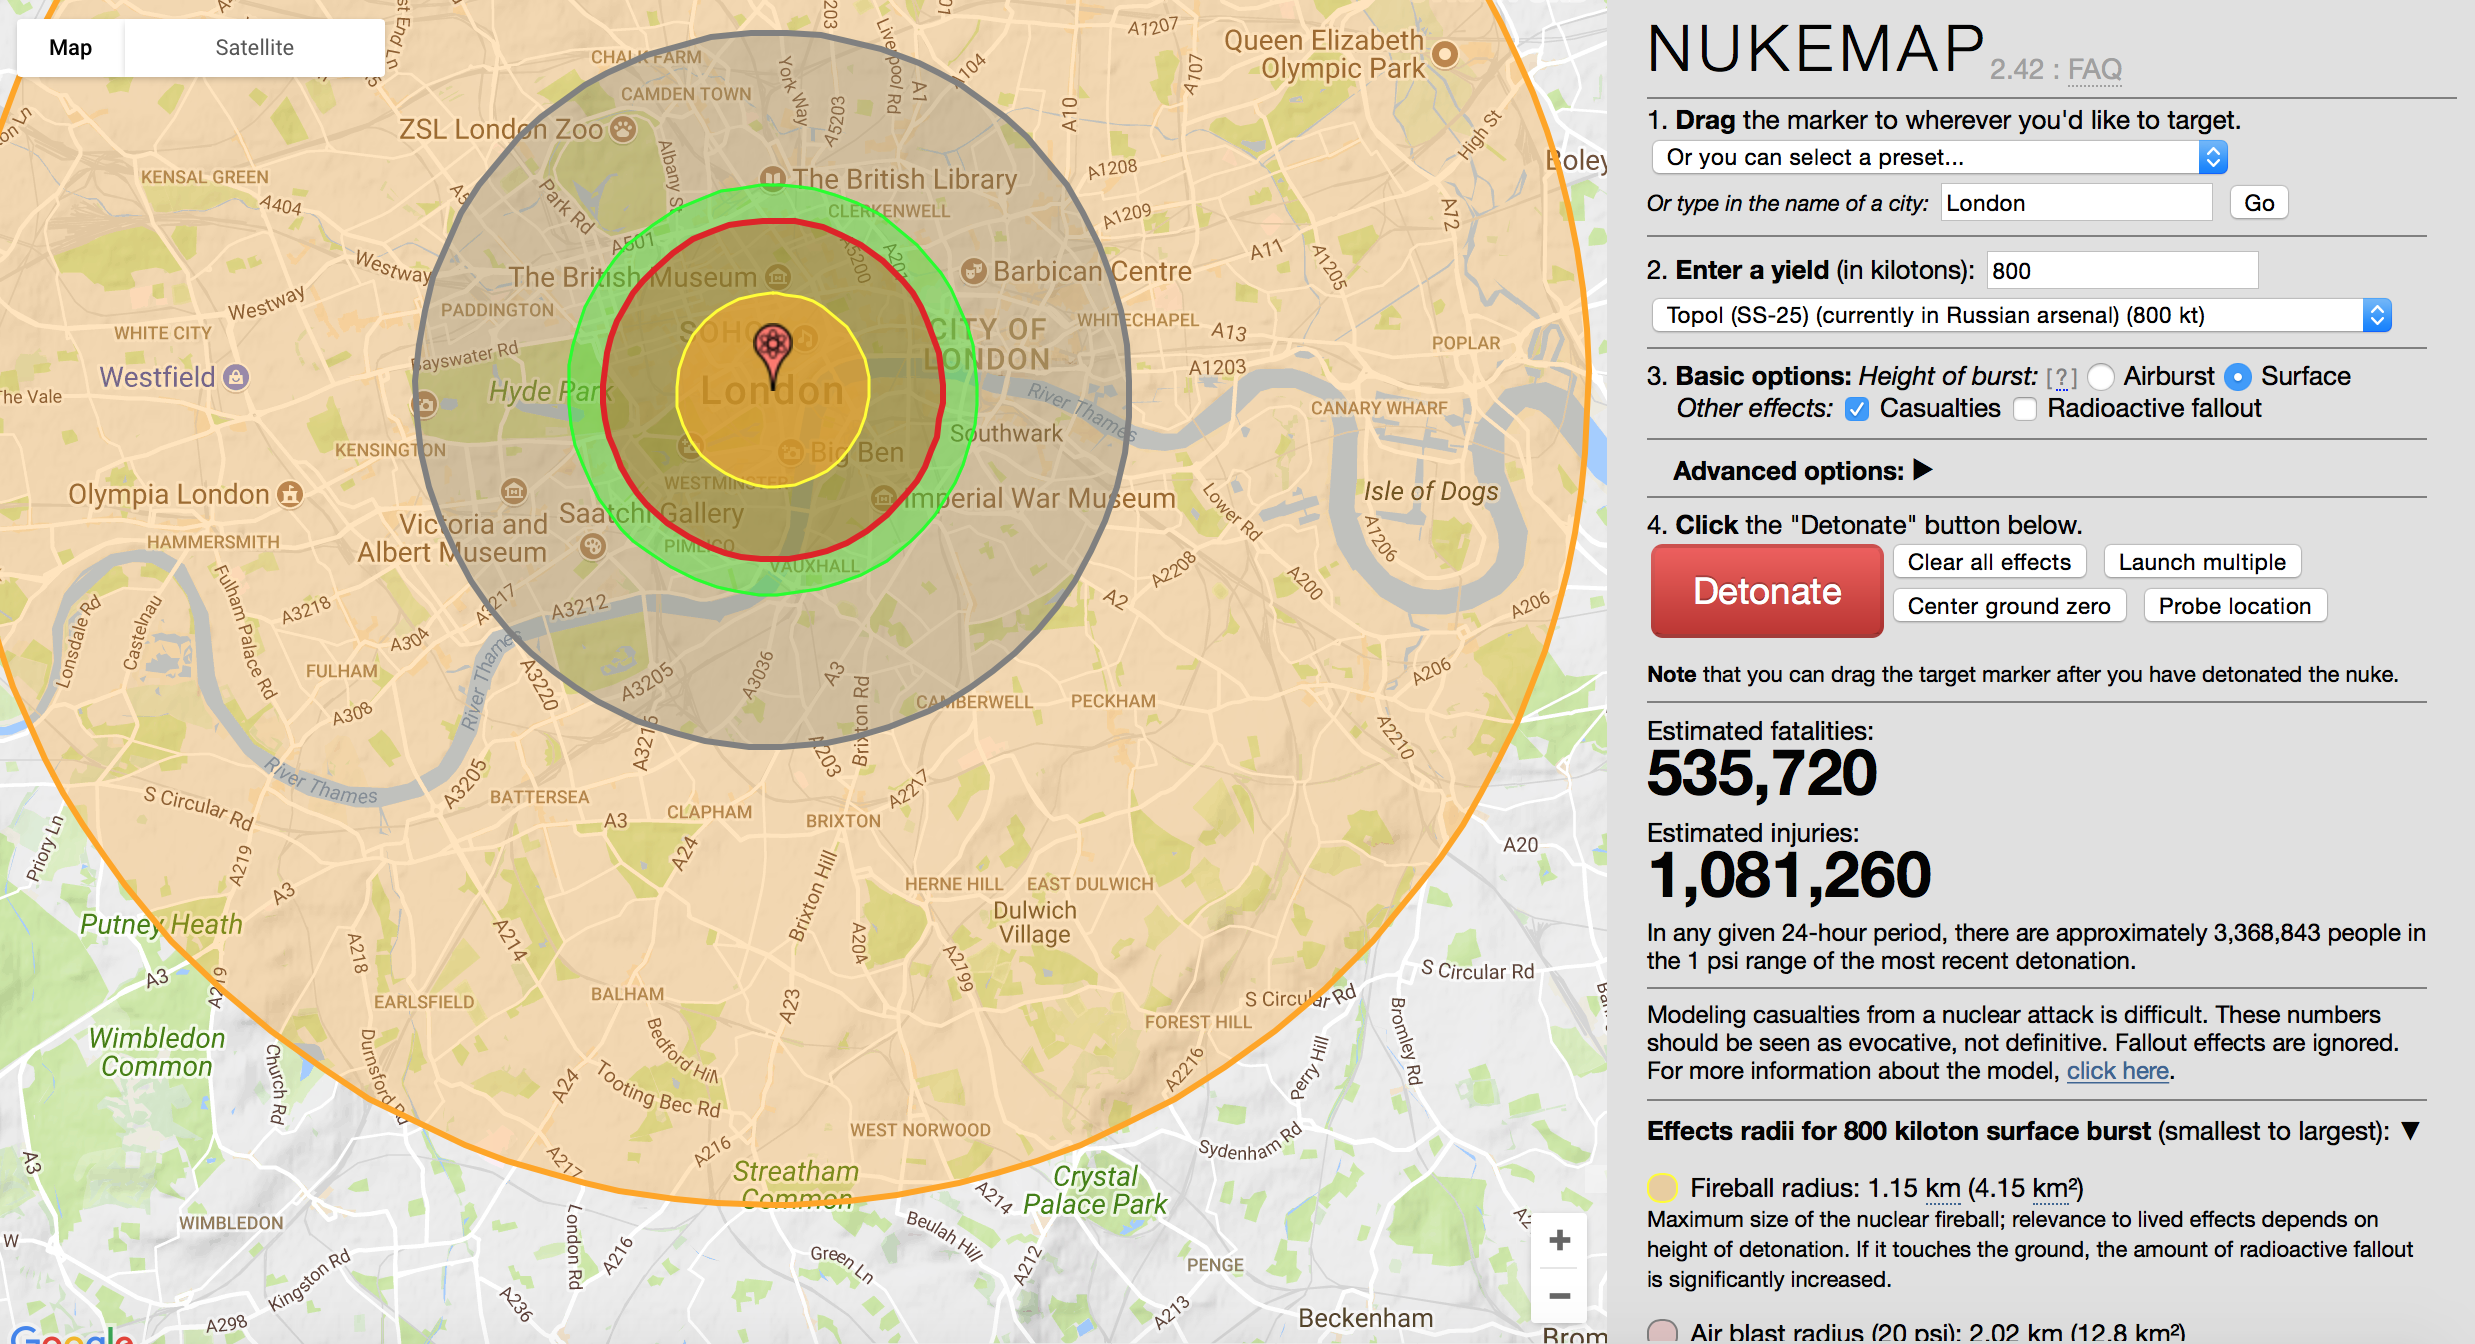 Nuke Map - the data of destruction - data-disruption-and-destruction